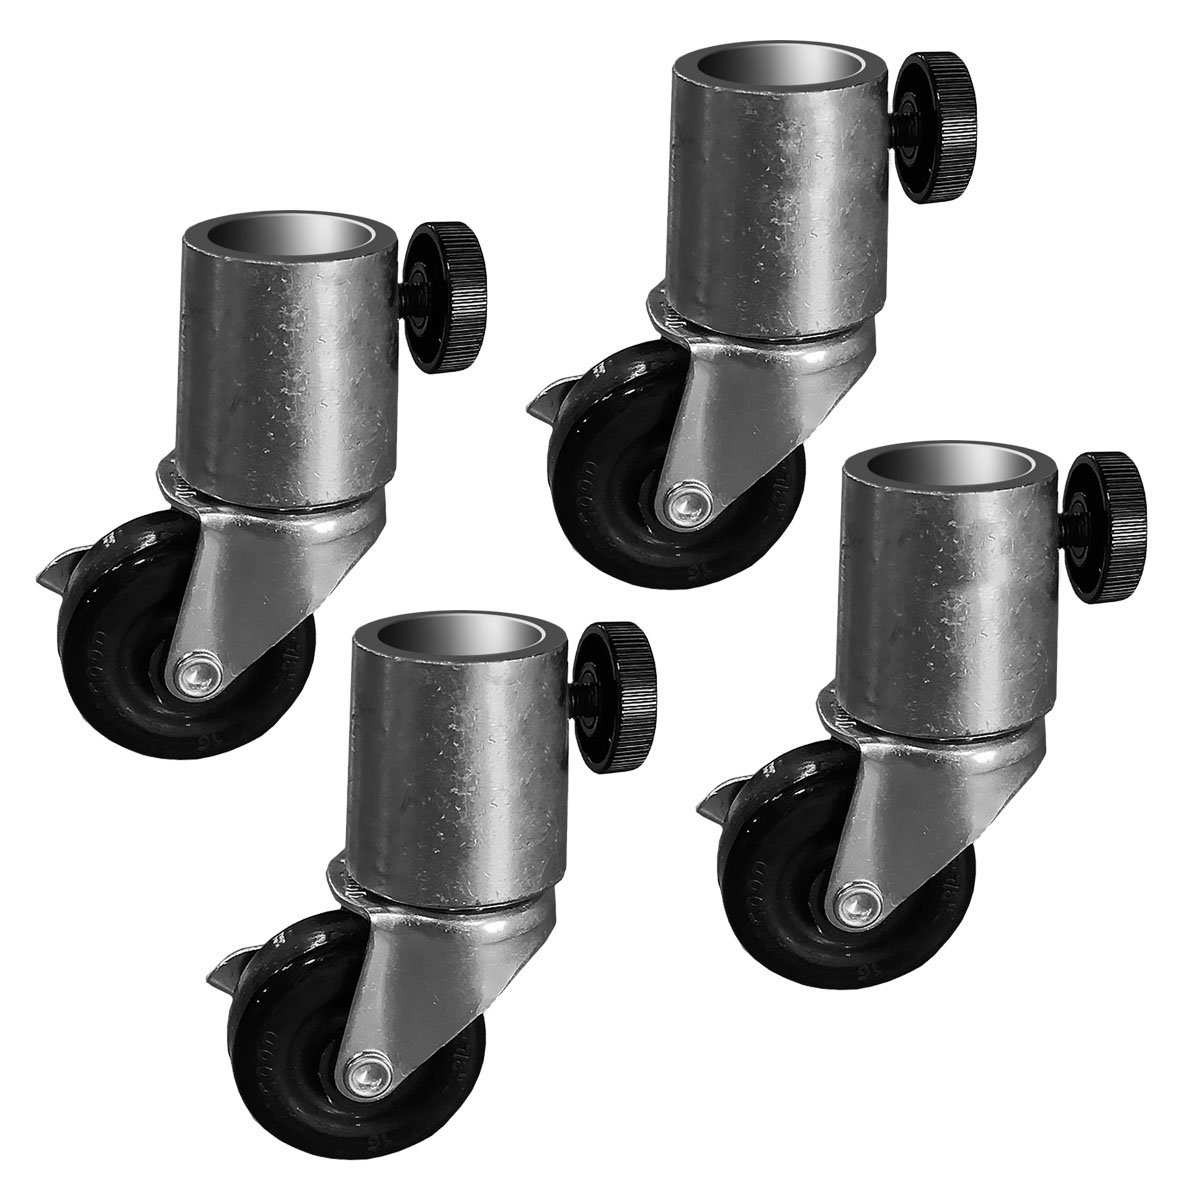 Wheels Locking For Tables Set Of 4